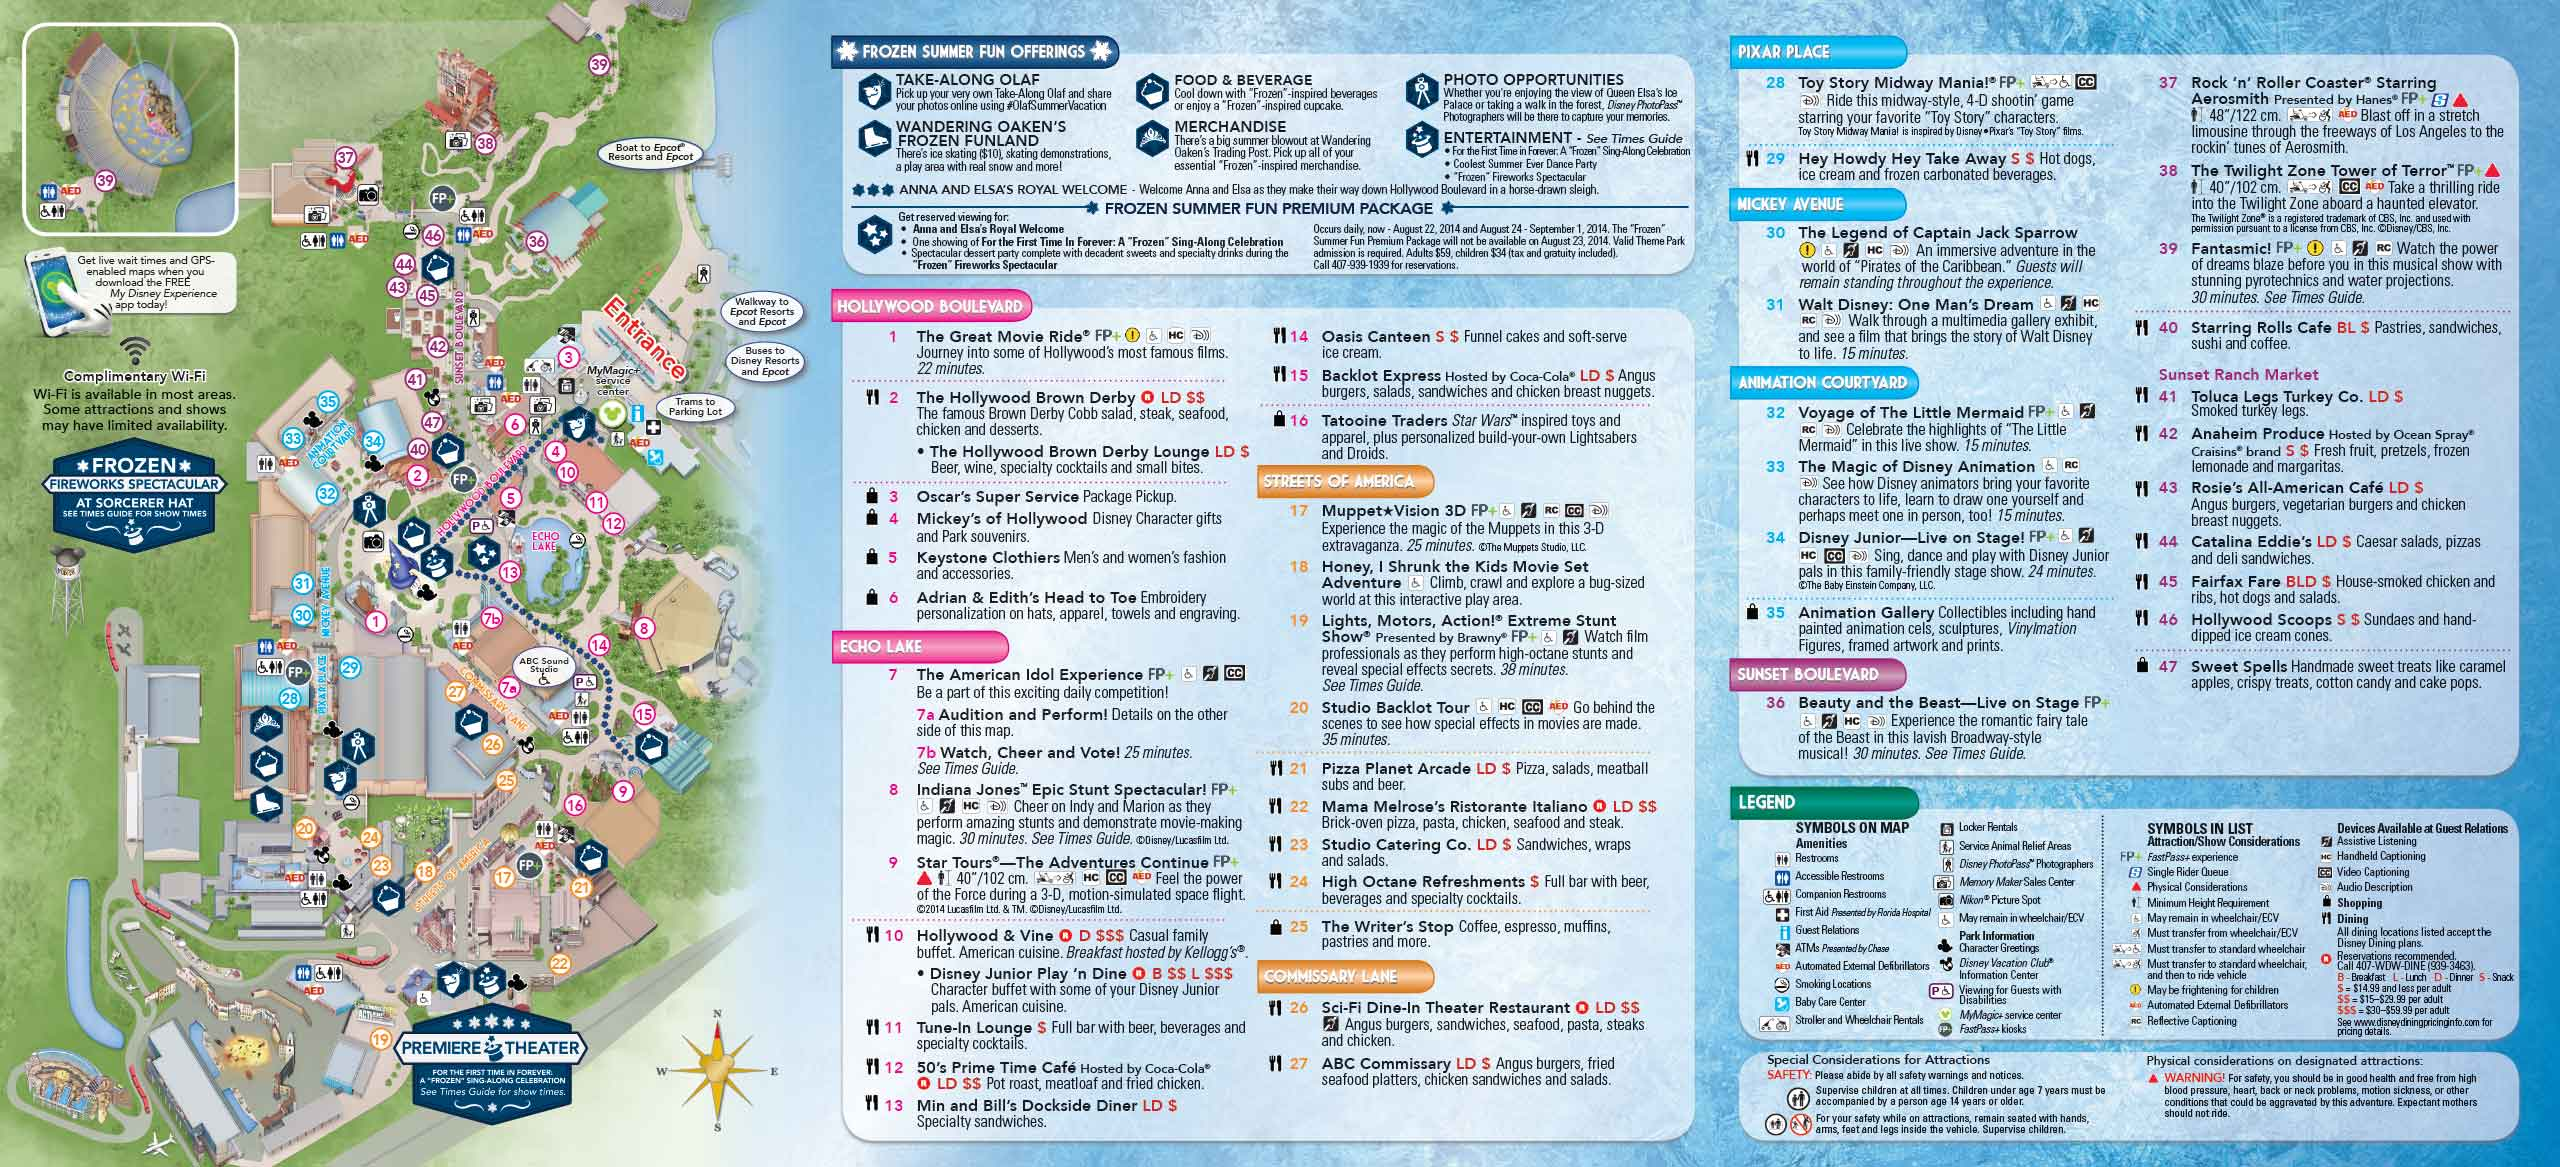 2014 Hollywood Studios Park Map - Walt Disney World Park Maps - WDWFans